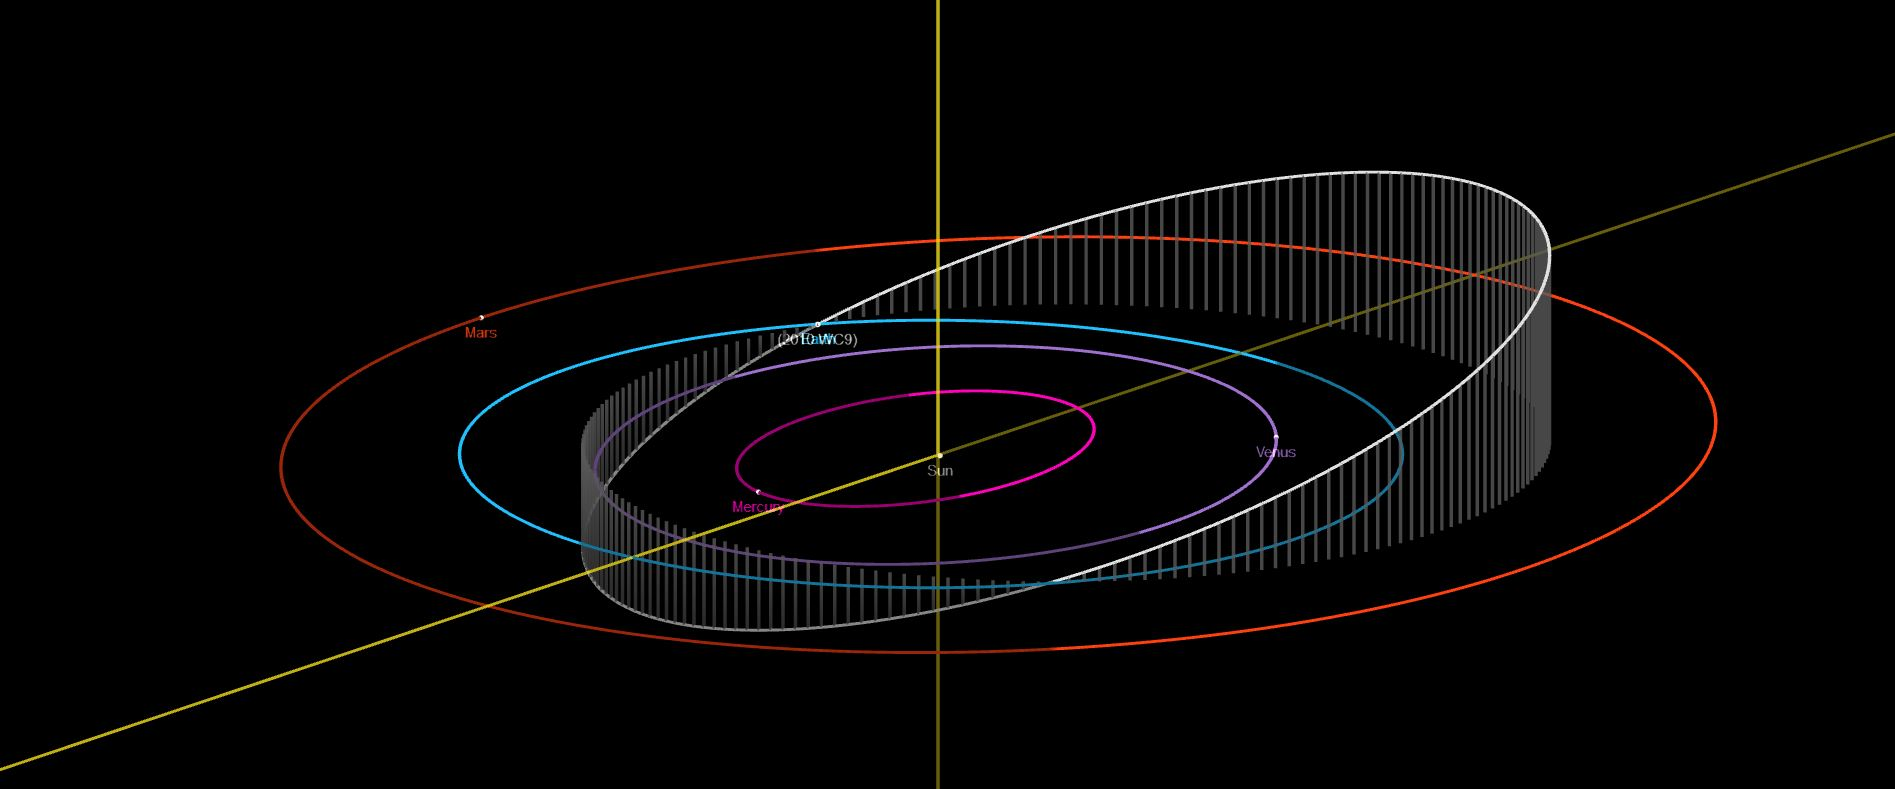 2010 WC9 is a 60-130-m large Apollo-type asteroid that will come as close to 0.5 LD from the Earth on May 15th, 2018. Credit: NASA/JPL